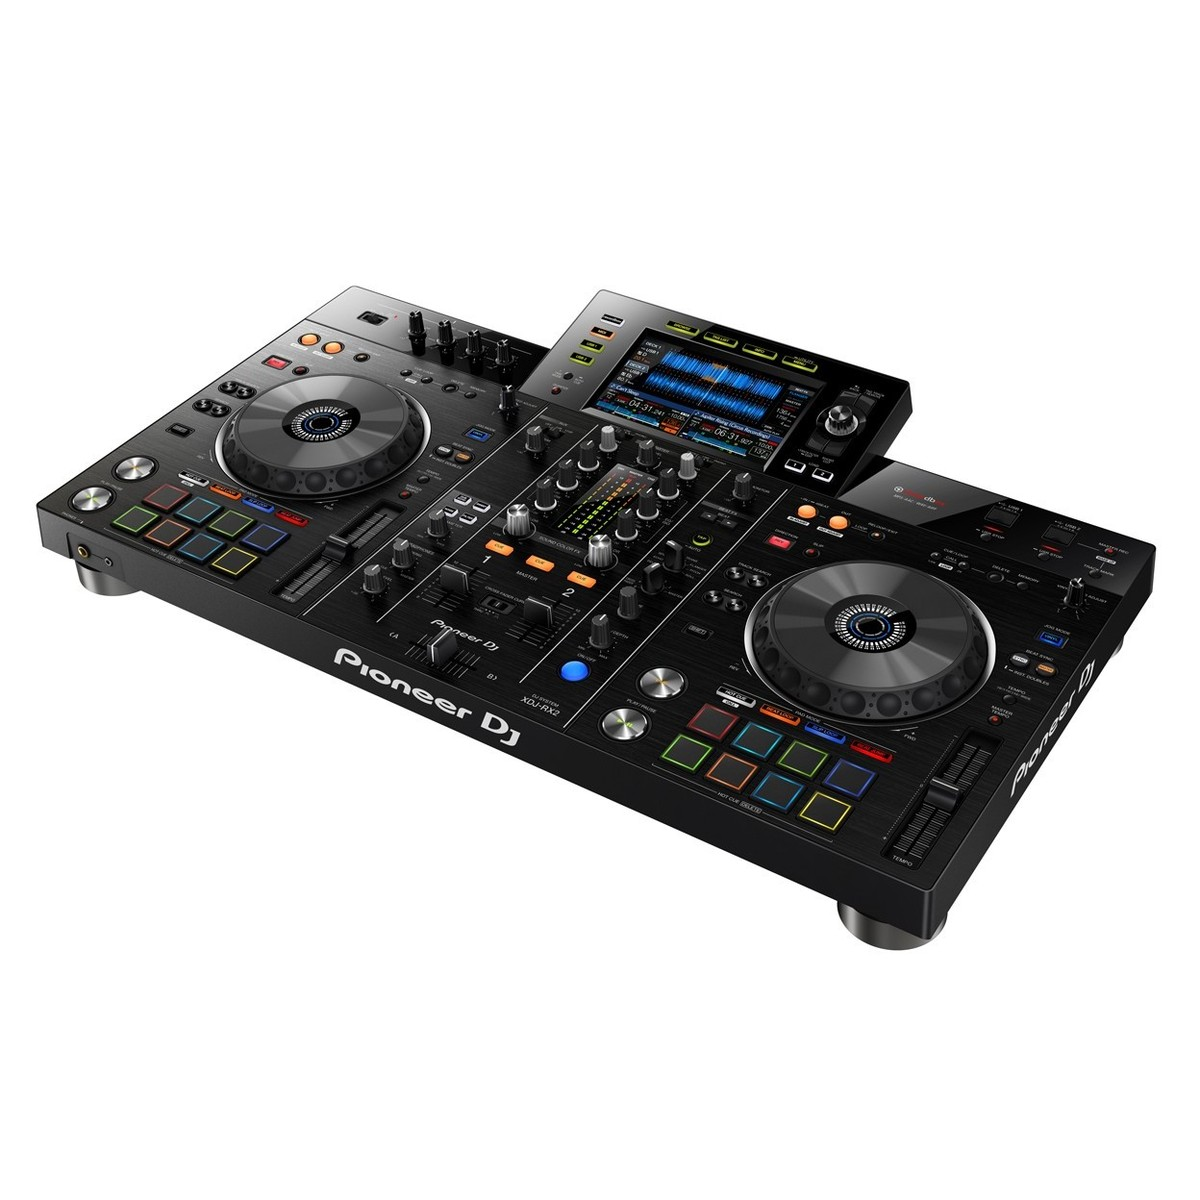 Dj Ganyani Sazobuya 2: Pioneer DJ XDJ-RX2 All-In-One DJ Controller At Gear4music